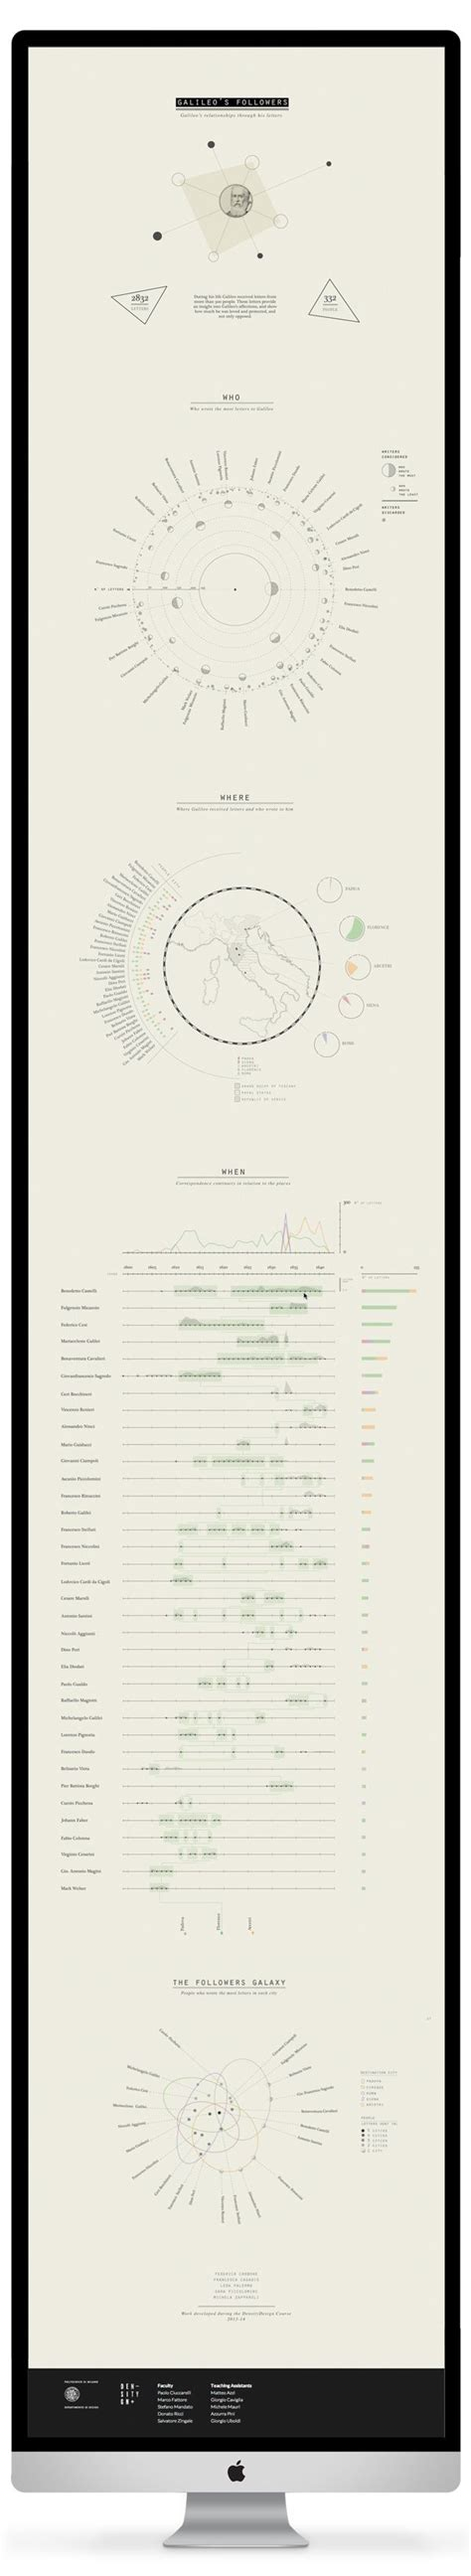 subdued colors subdued colors historical figure infographic galileo